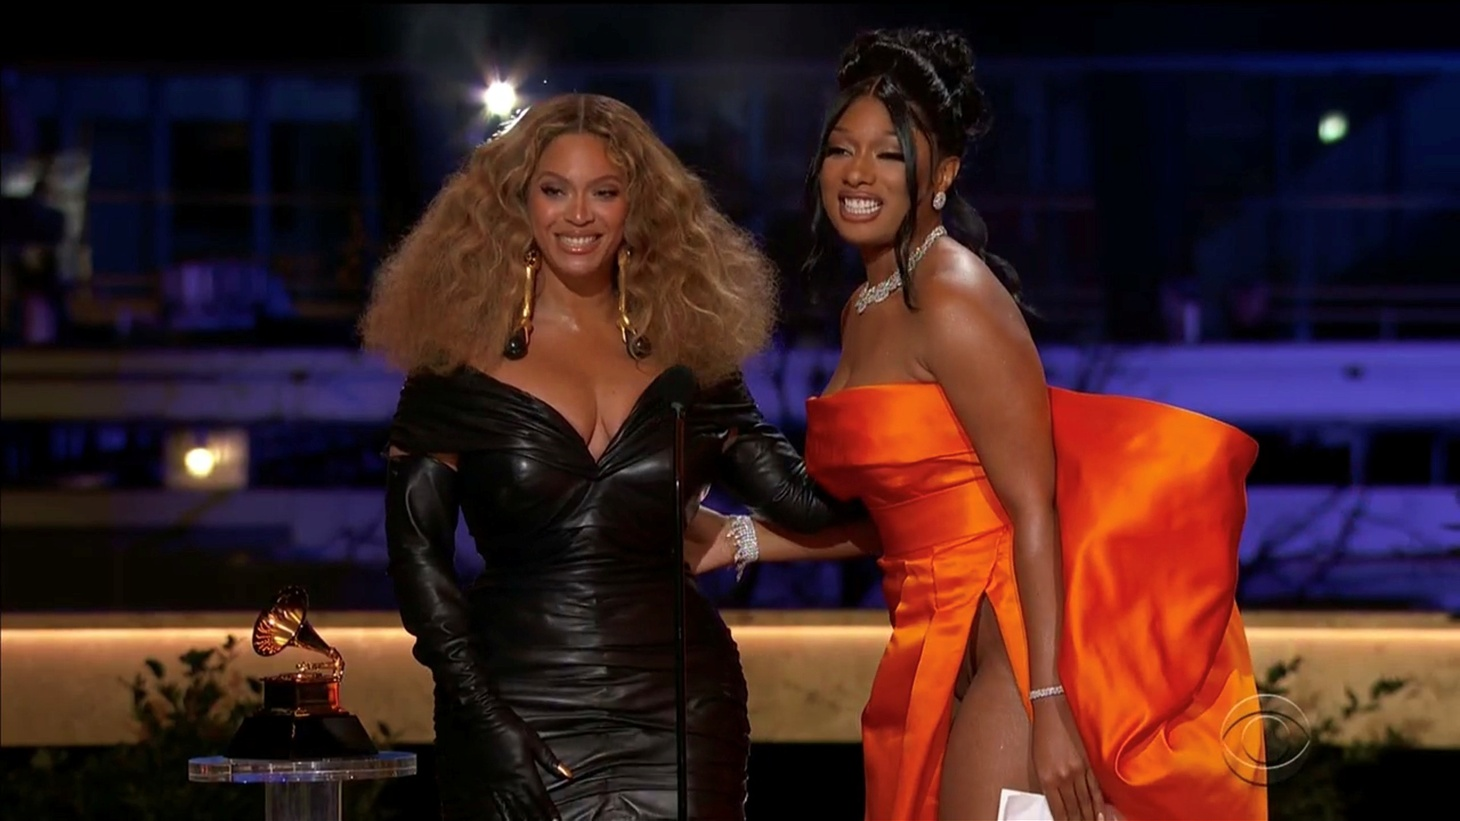 """Beyoncé and Megan Thee Stallion win the Grammy for Best Rap Performance for """"Savage"""" in this screen grab taken from video of the 63rd Annual Grammy Awards in Los Angeles, California, U.S., March 14, 2021."""